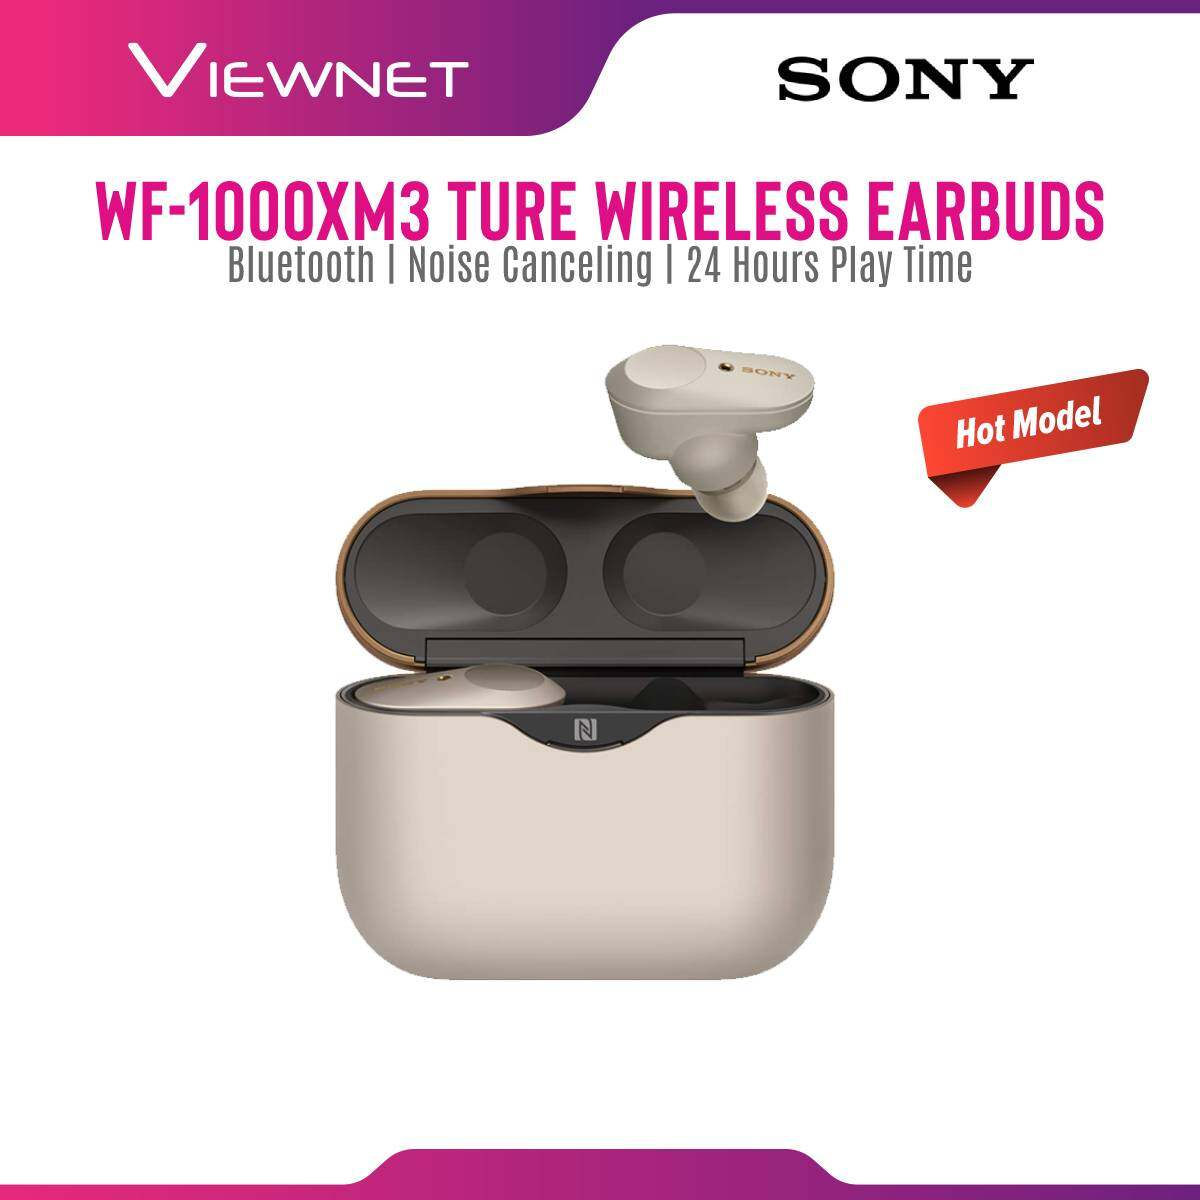 [HOT MODEL] Sony WF-1000XM3 WF1000XM3 Premium Bluetooth Wireless Noise Cancelling In-ear Headphones Earbuds with Charging Case